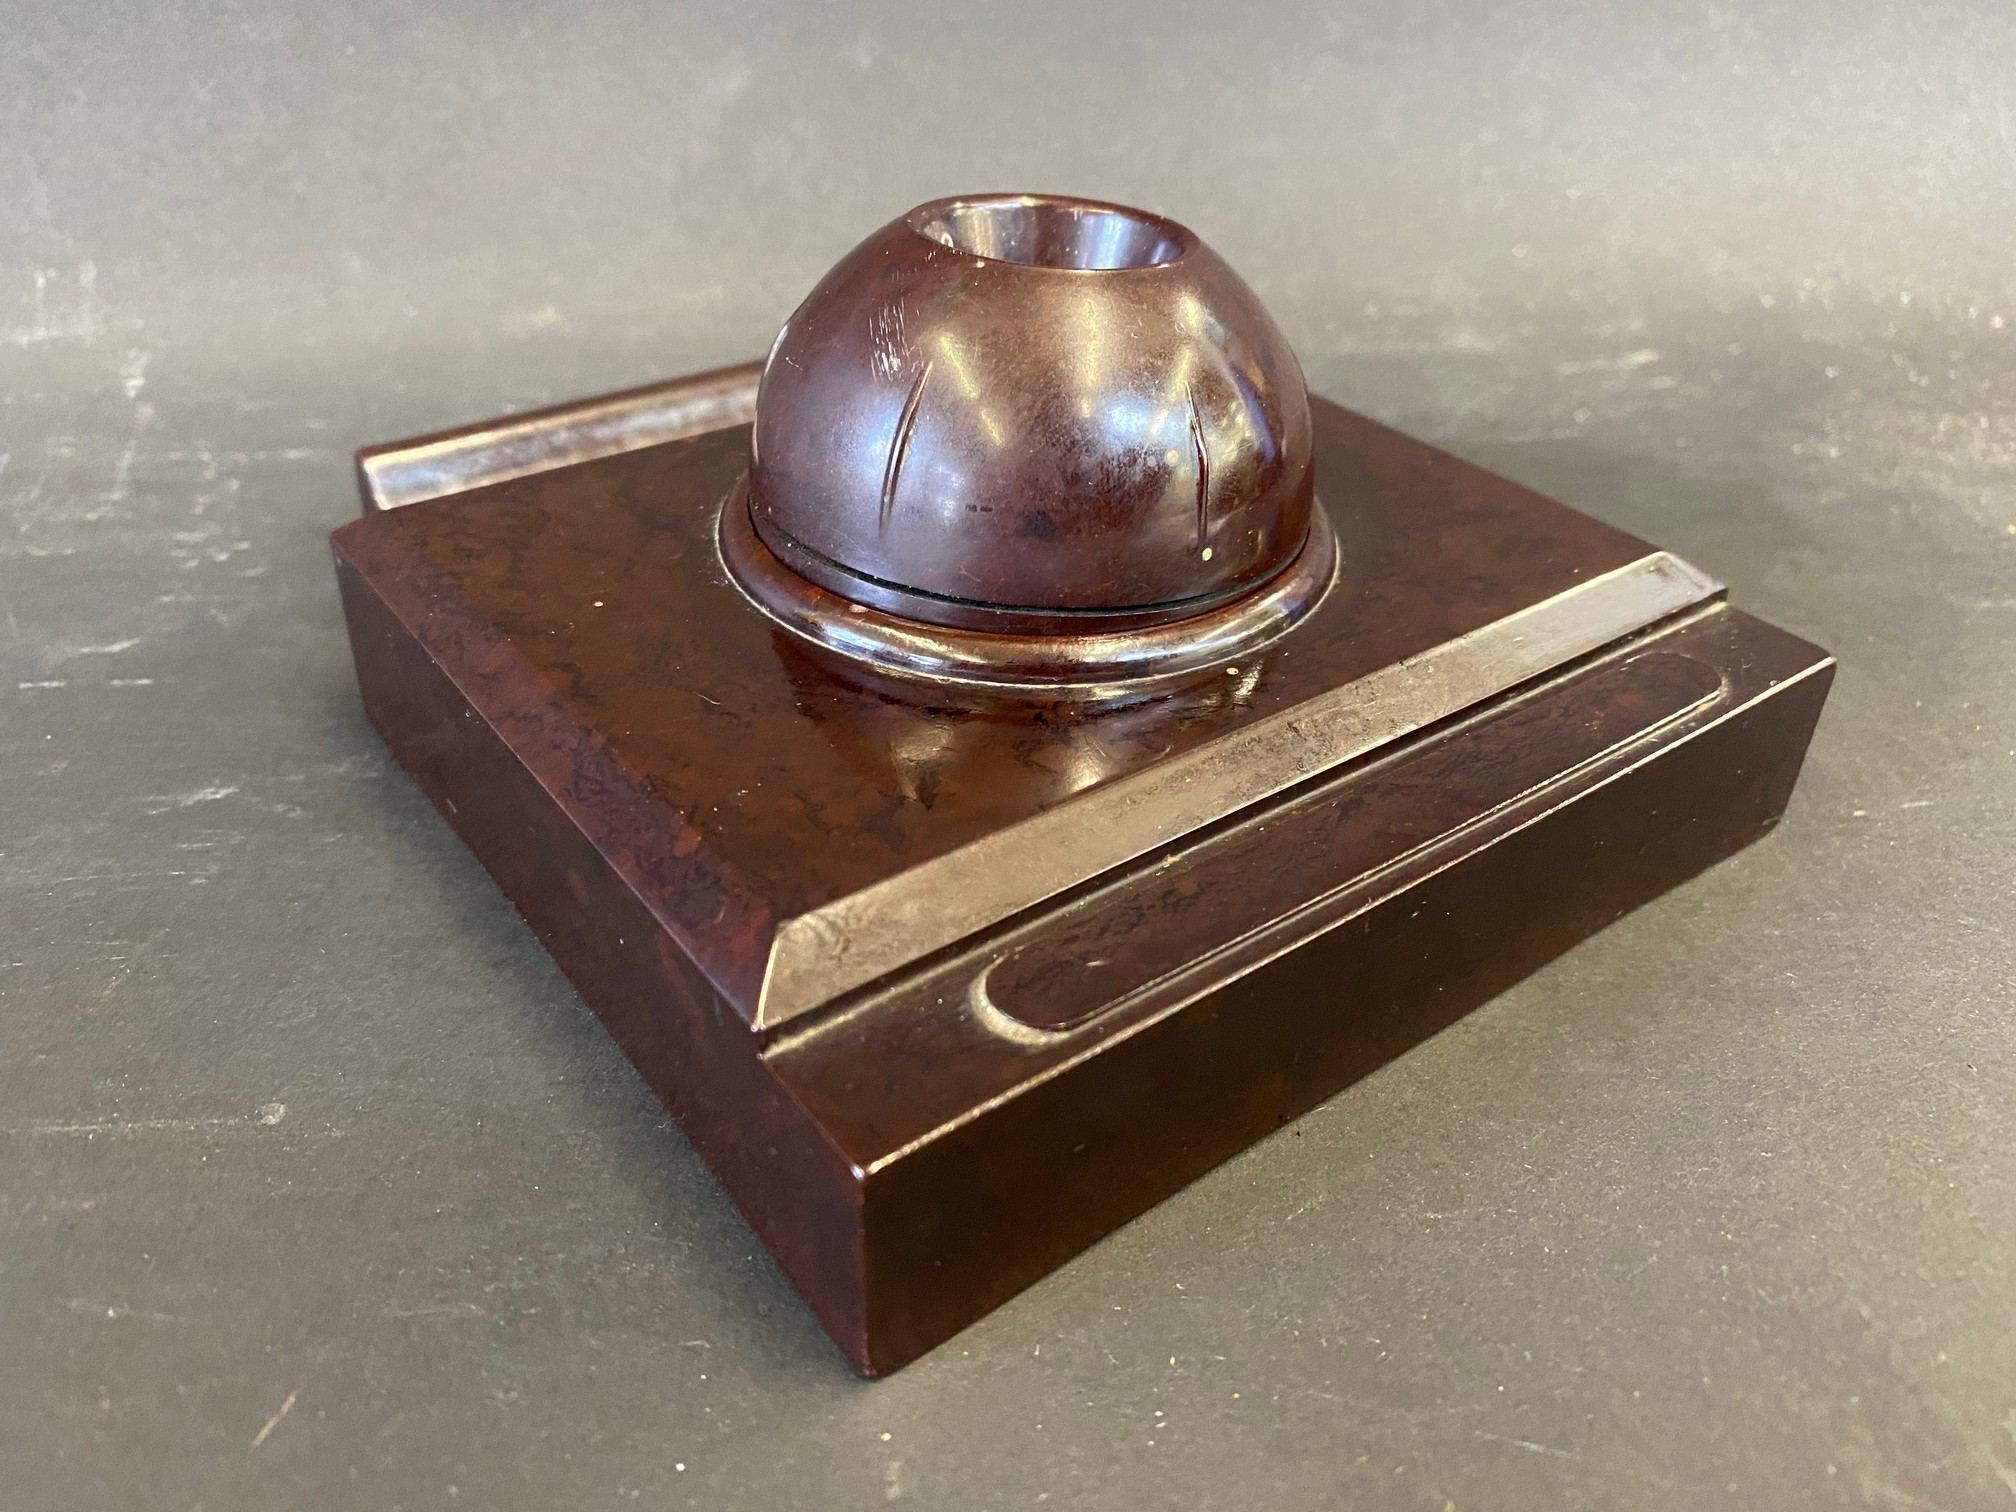 A Delage bakelite style pen holder and inkwell, possibly a salesman's desk piece in a dealership. - Image 2 of 2